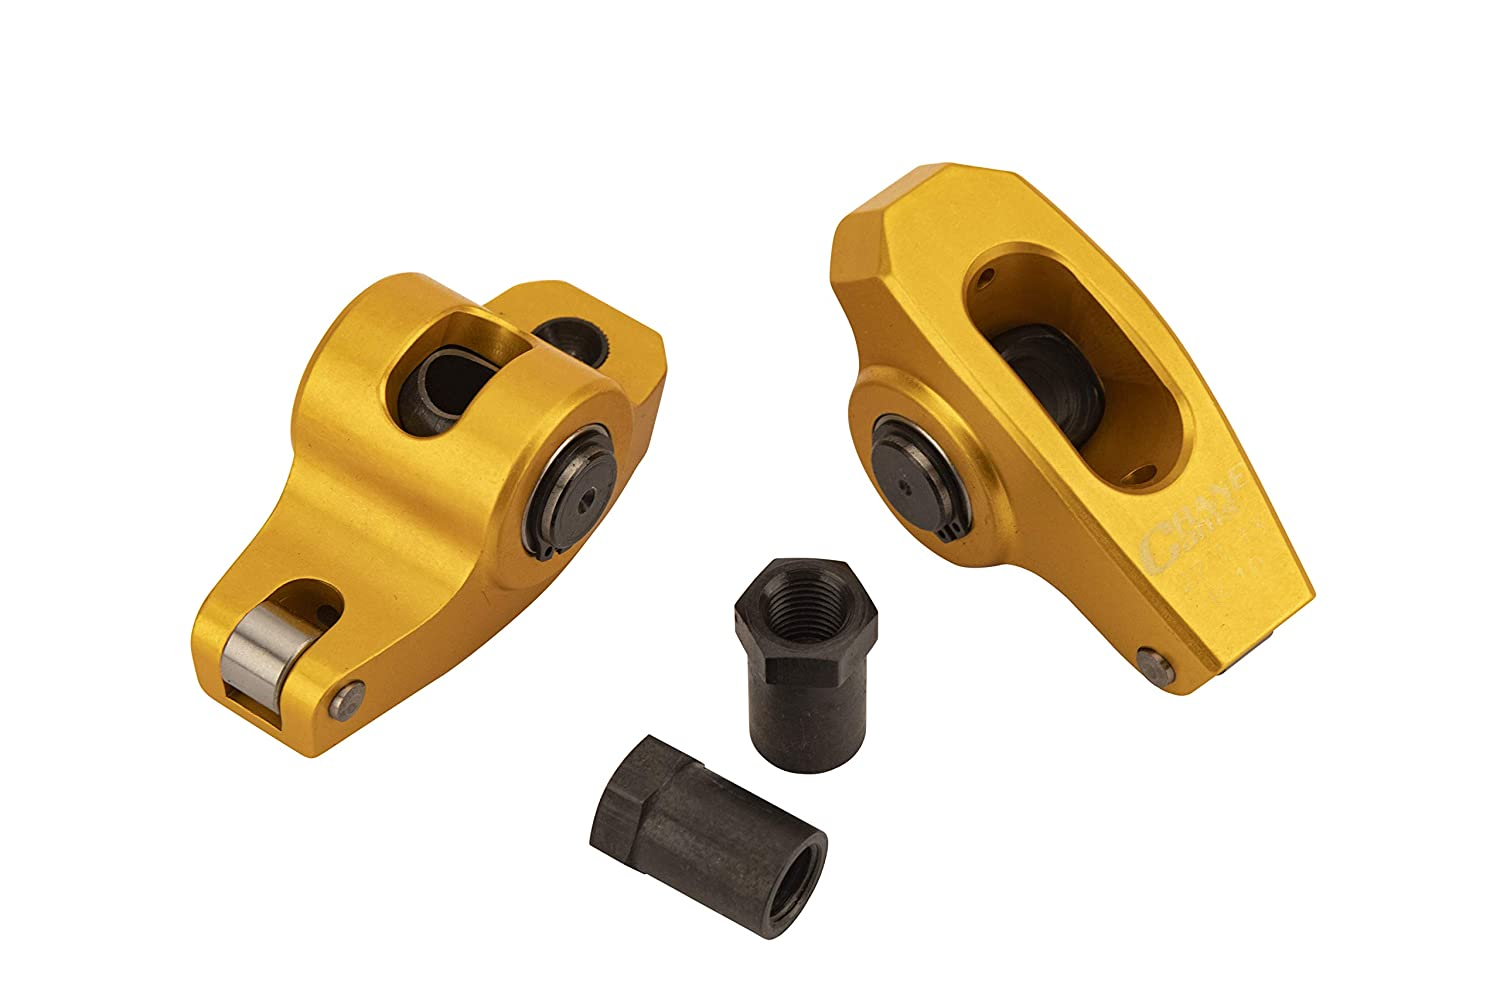 Crane 27750-16 Gold Race Extruded Roller Non-Self Aligning Rocker Arm Set of 16